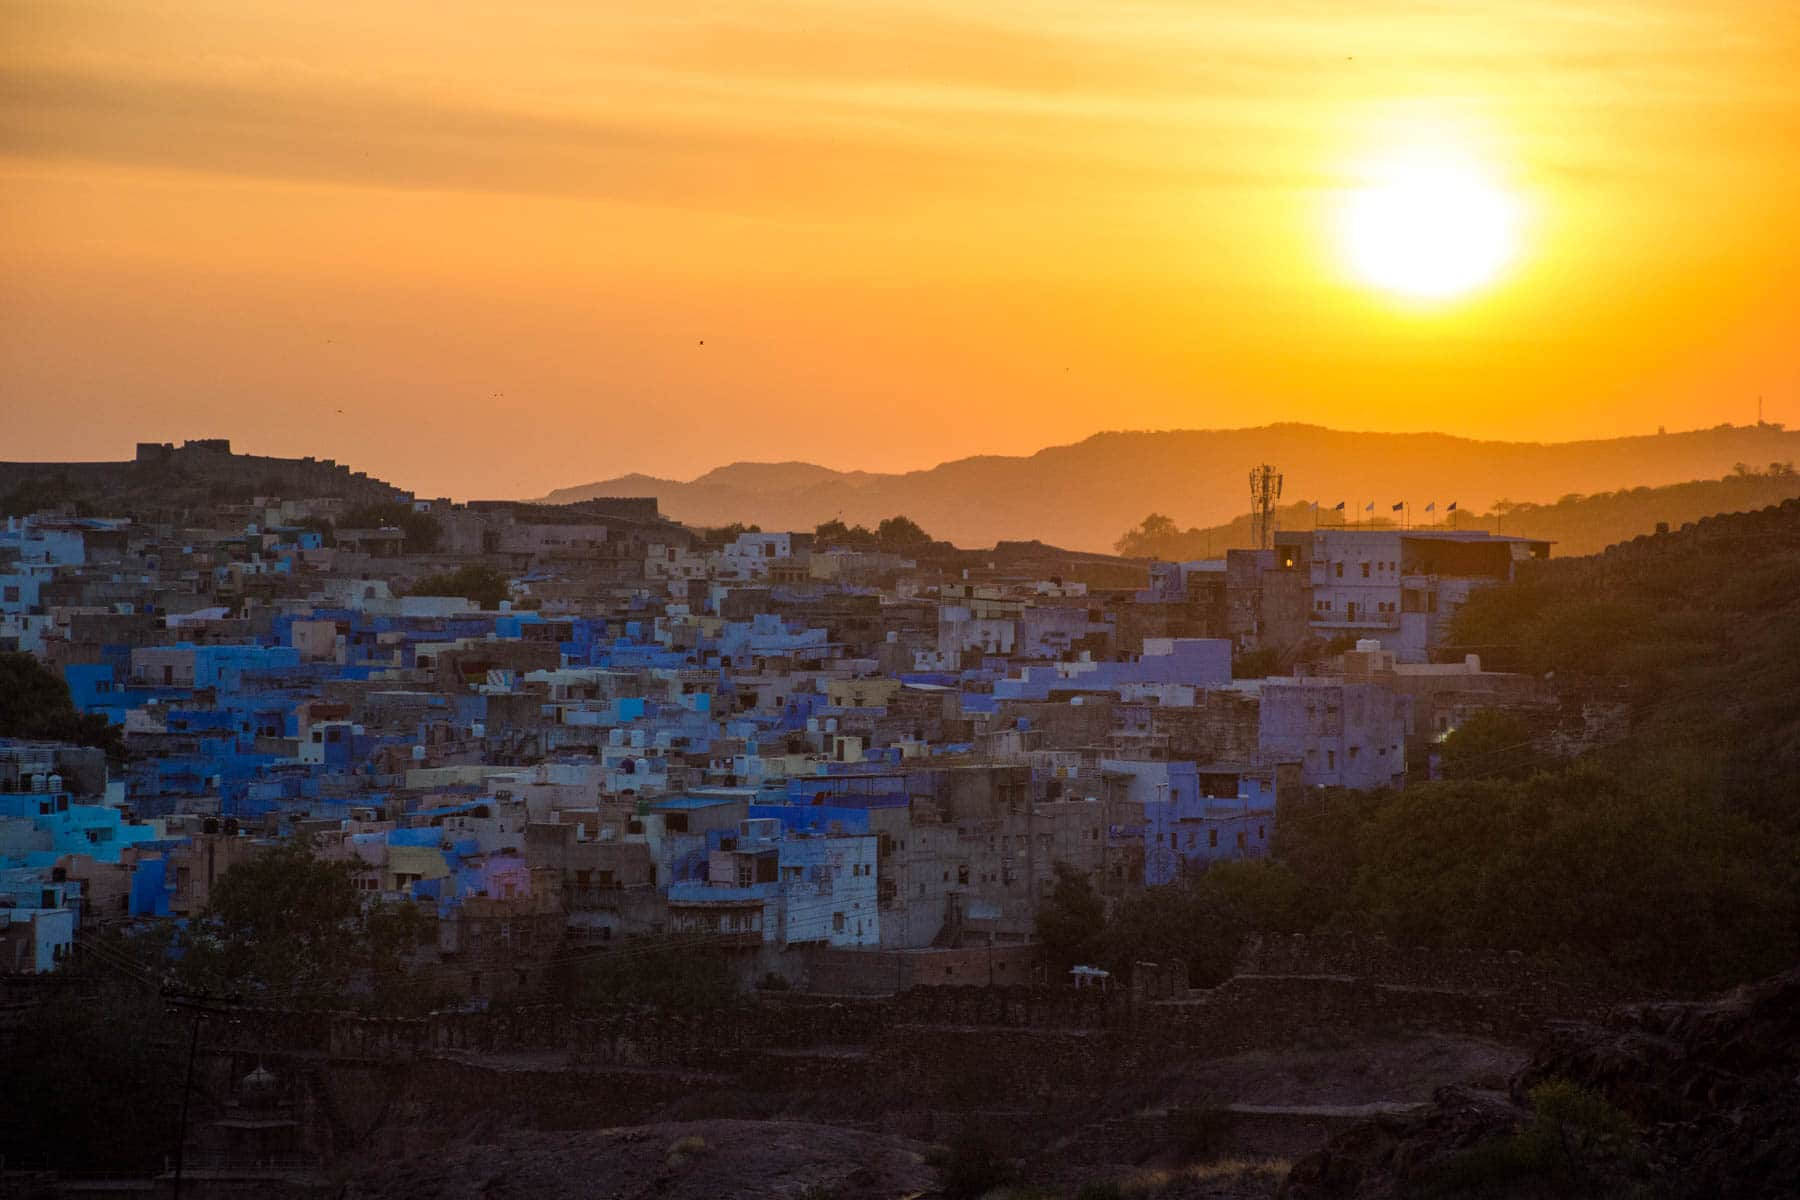 Photo essay about the streets and people of the Blue City of Jodhpur, Rajasthan, India - A sunset view from Mehrangarh fort - Lost With Purpose